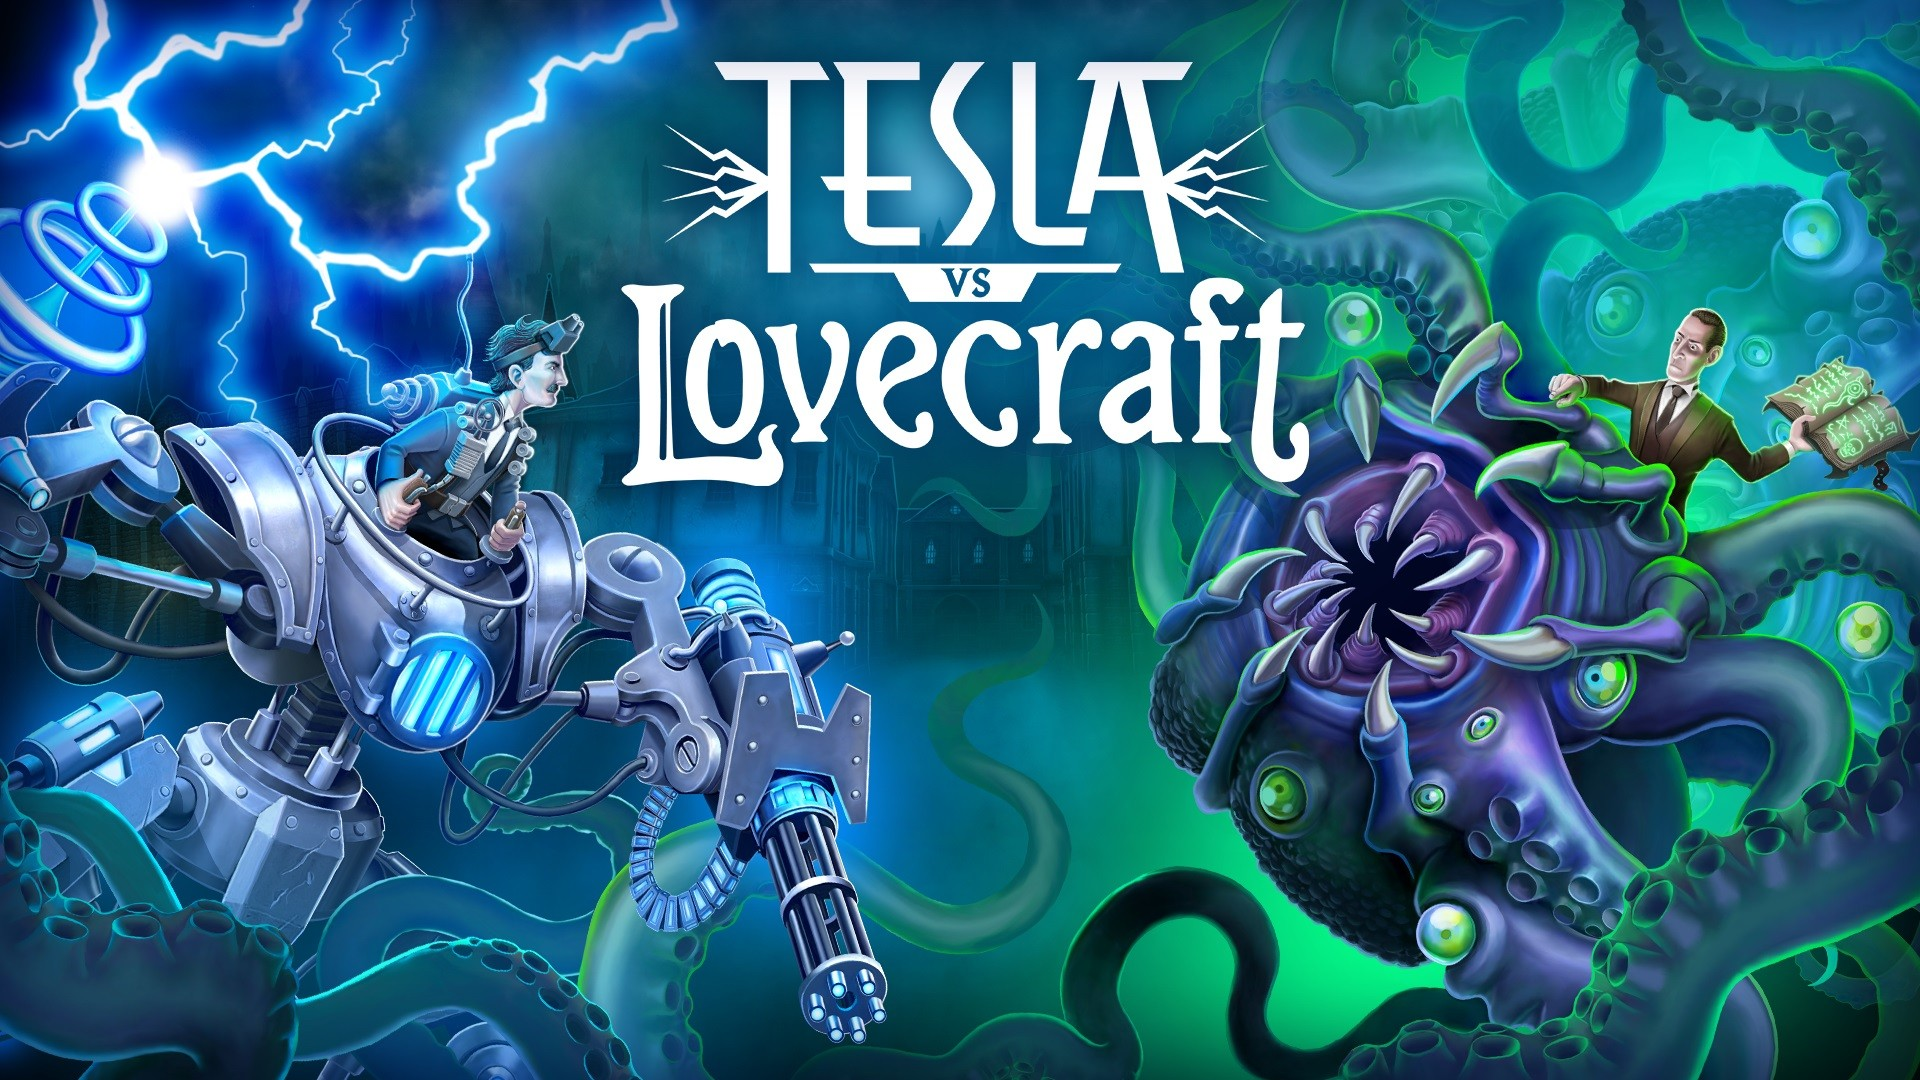 Tesla vs Lovecraft head